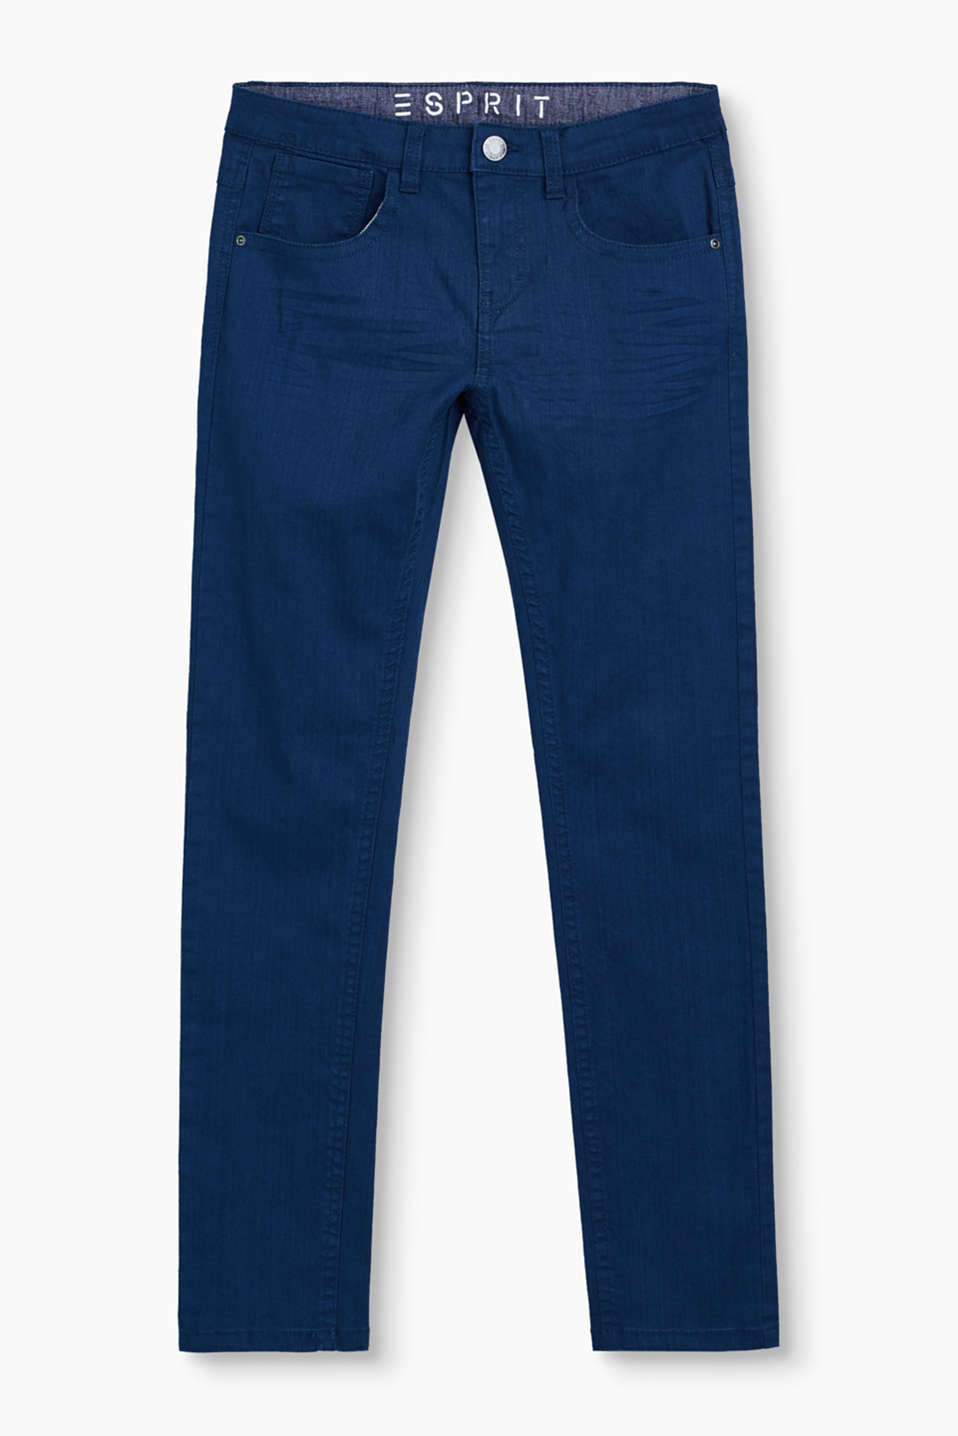 These clean, solid-dyed denim jeans in a classic five-pocket style are a great basic piece.